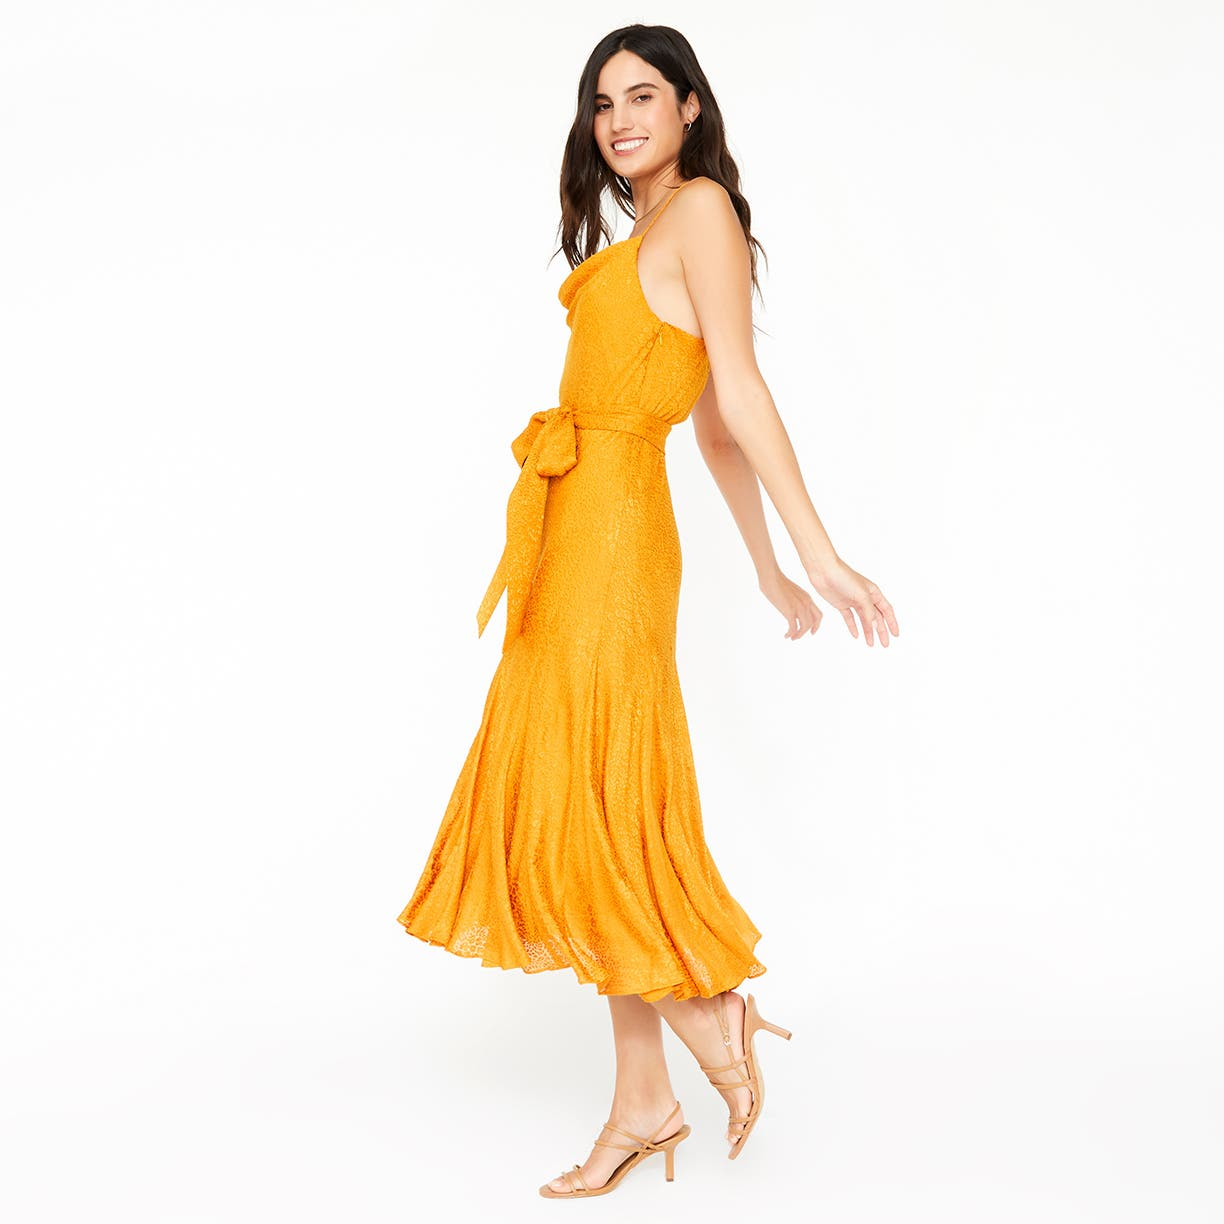 Nordstrom: Deals on amazing brands up to 70% off